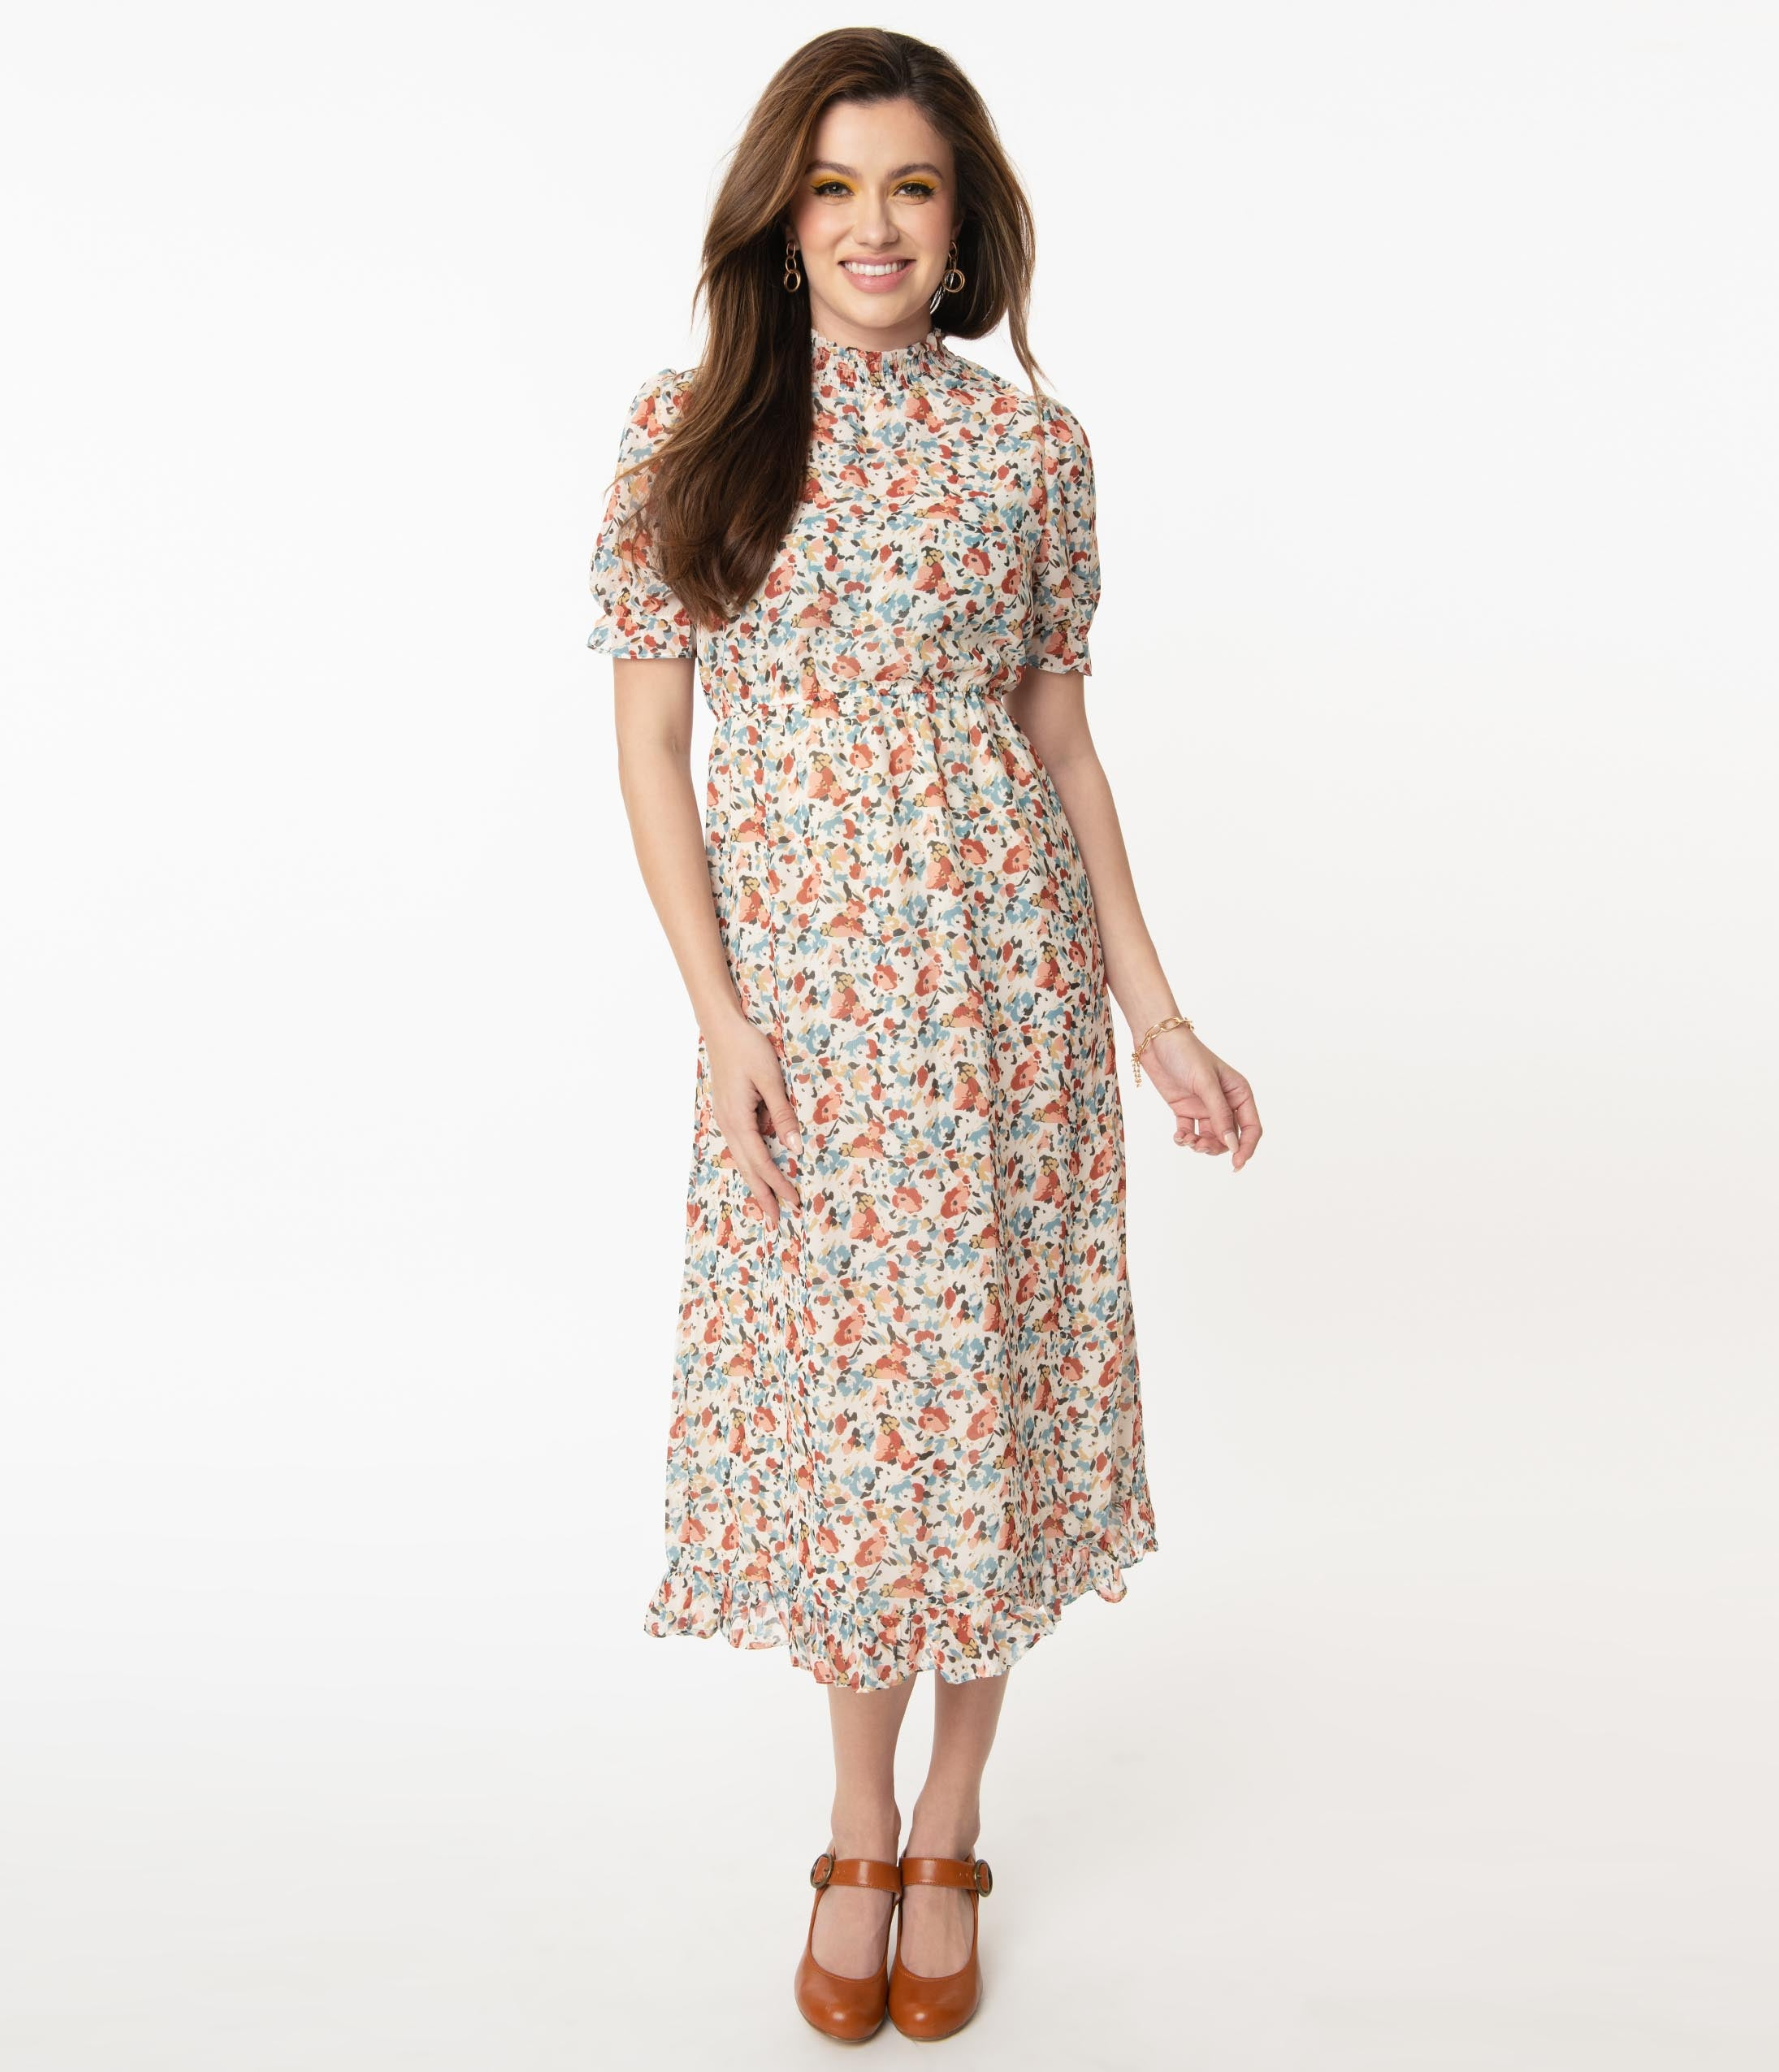 1940s Fashion Advice for Tall Women 1940S Style Off White  Multicolor Floral Print Midi Dress $68.00 AT vintagedancer.com